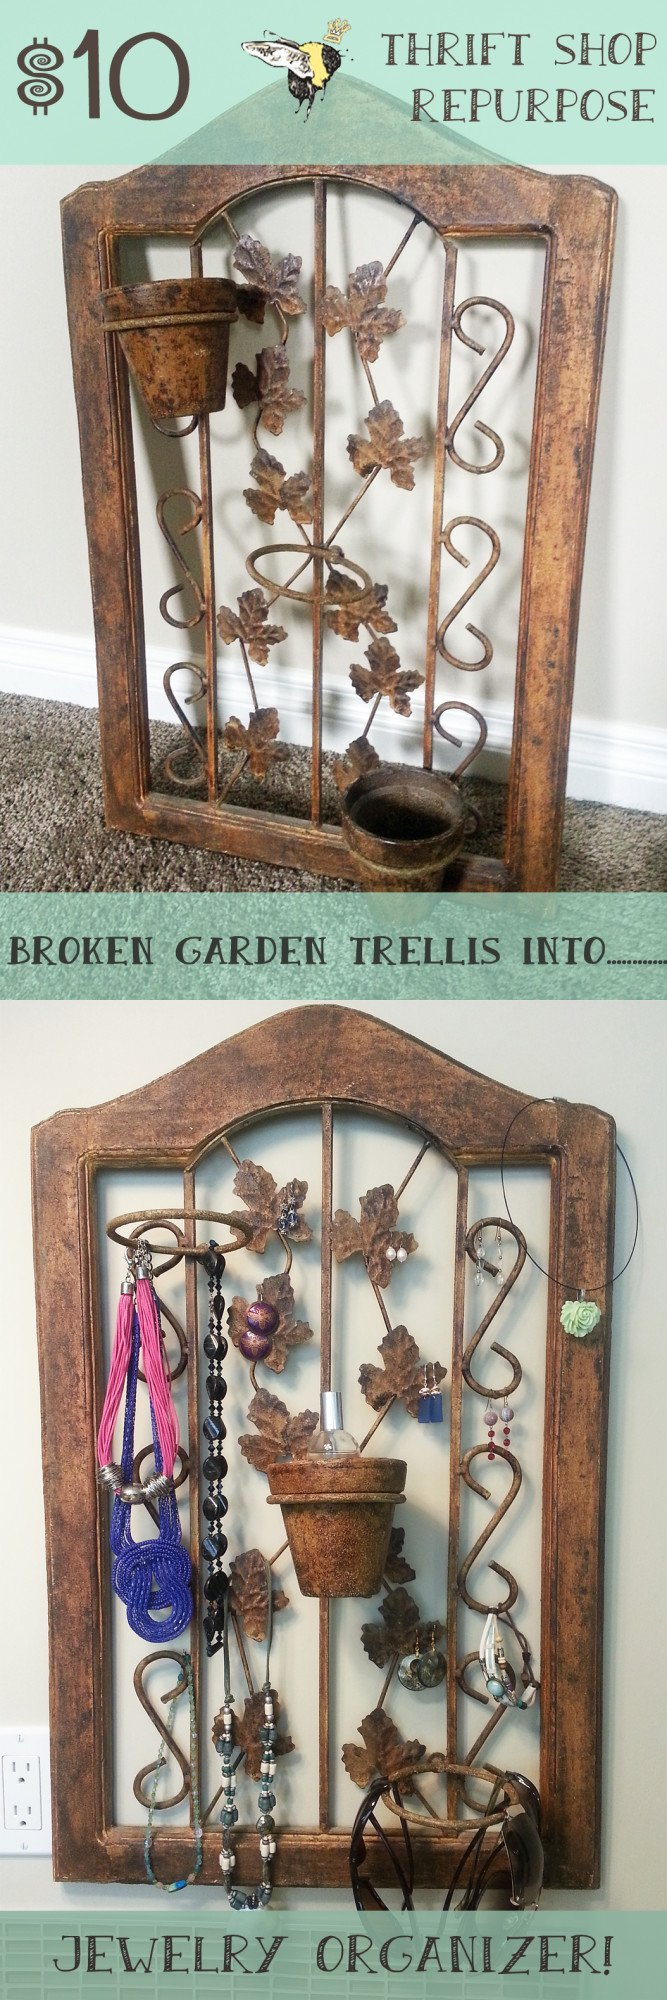 jewelry organizer before after